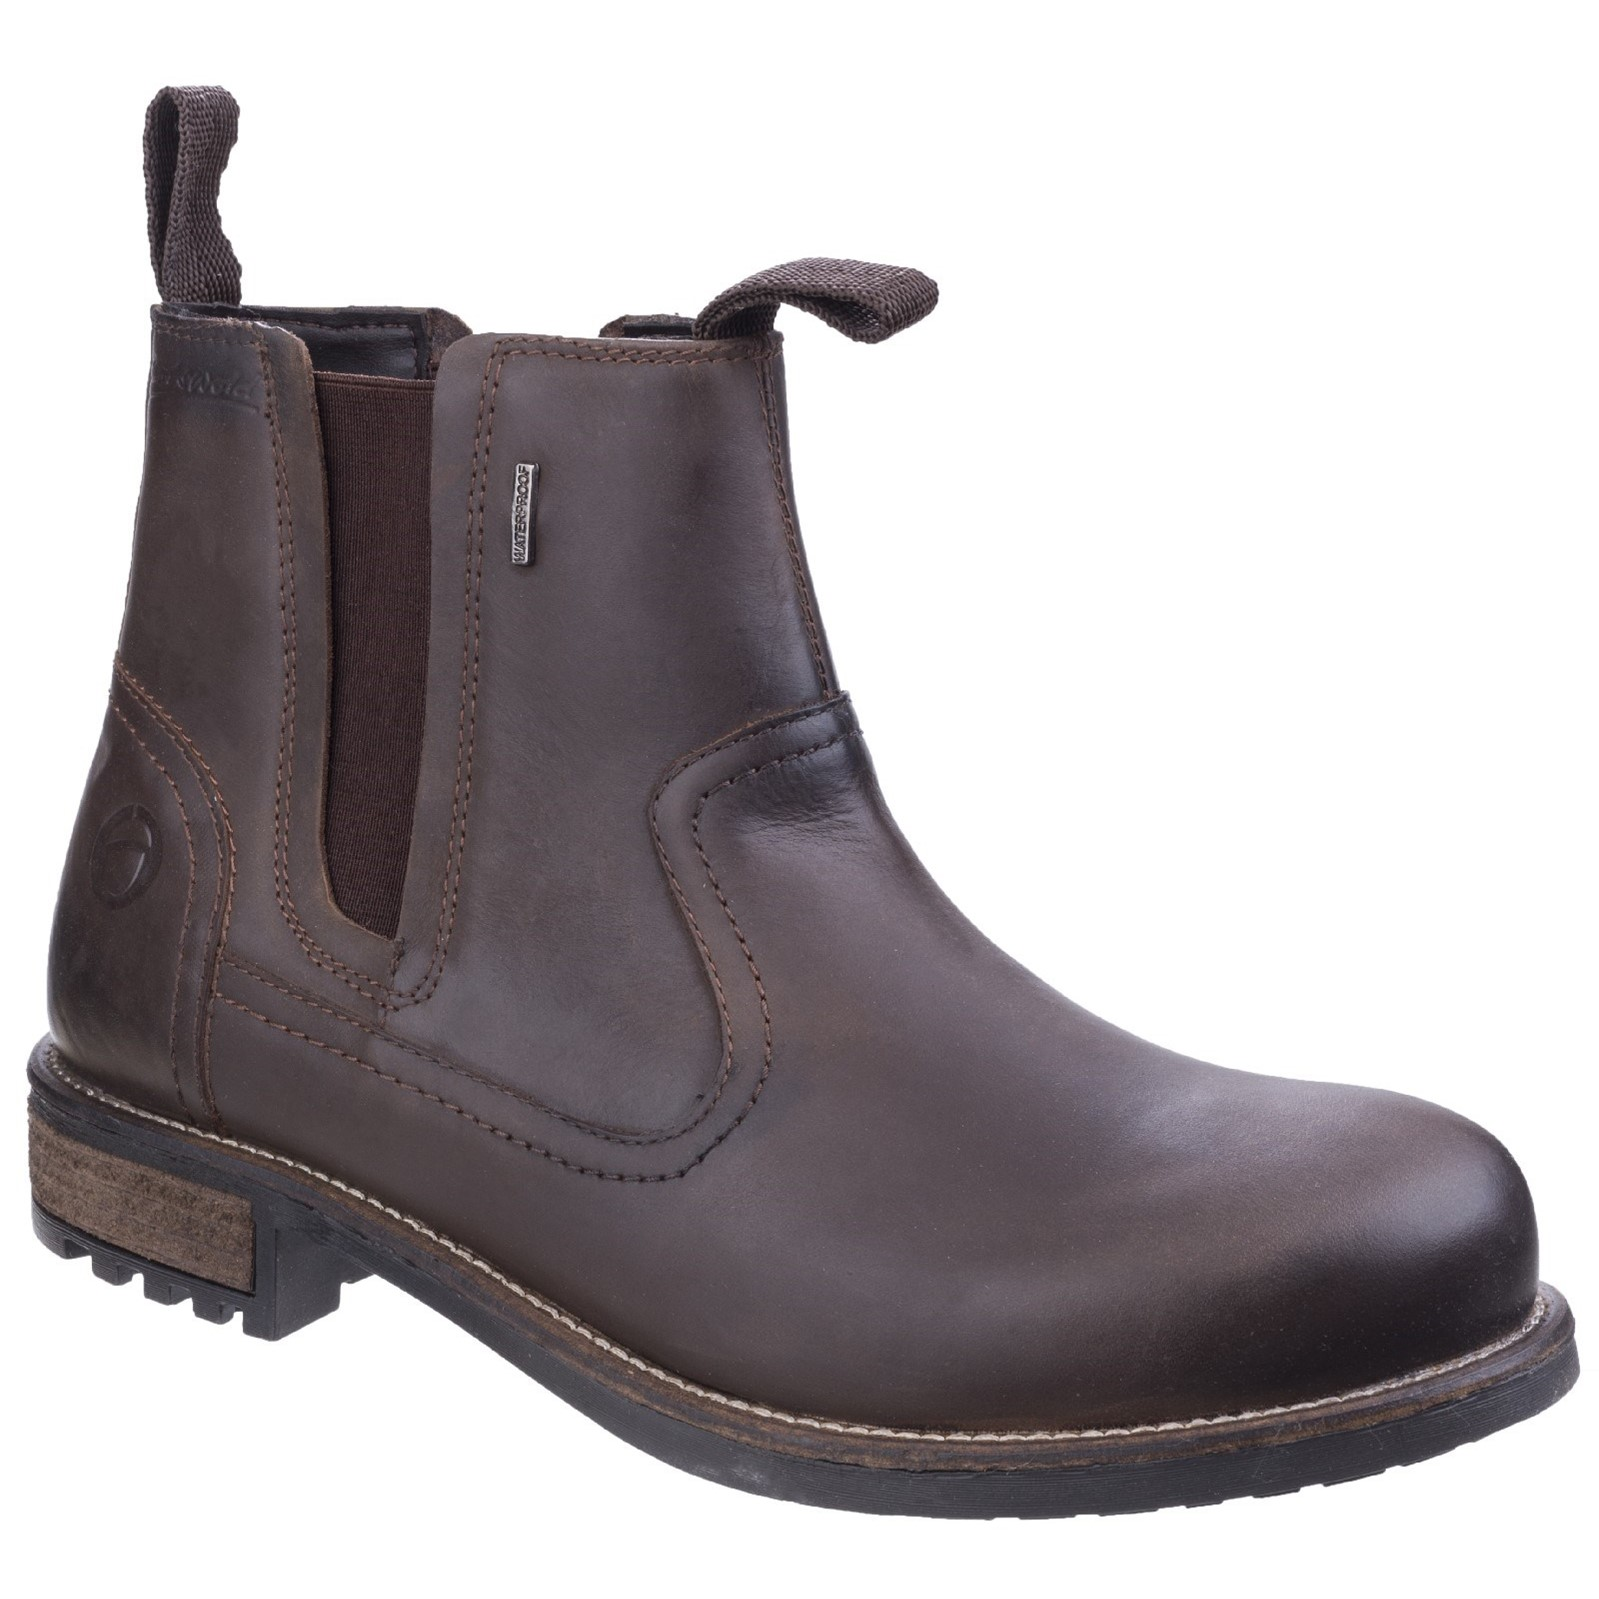 good selling purchase genuine cheapest sale Cotswold Worcester Waterproof Nubuck Chelsea Dealer Boots